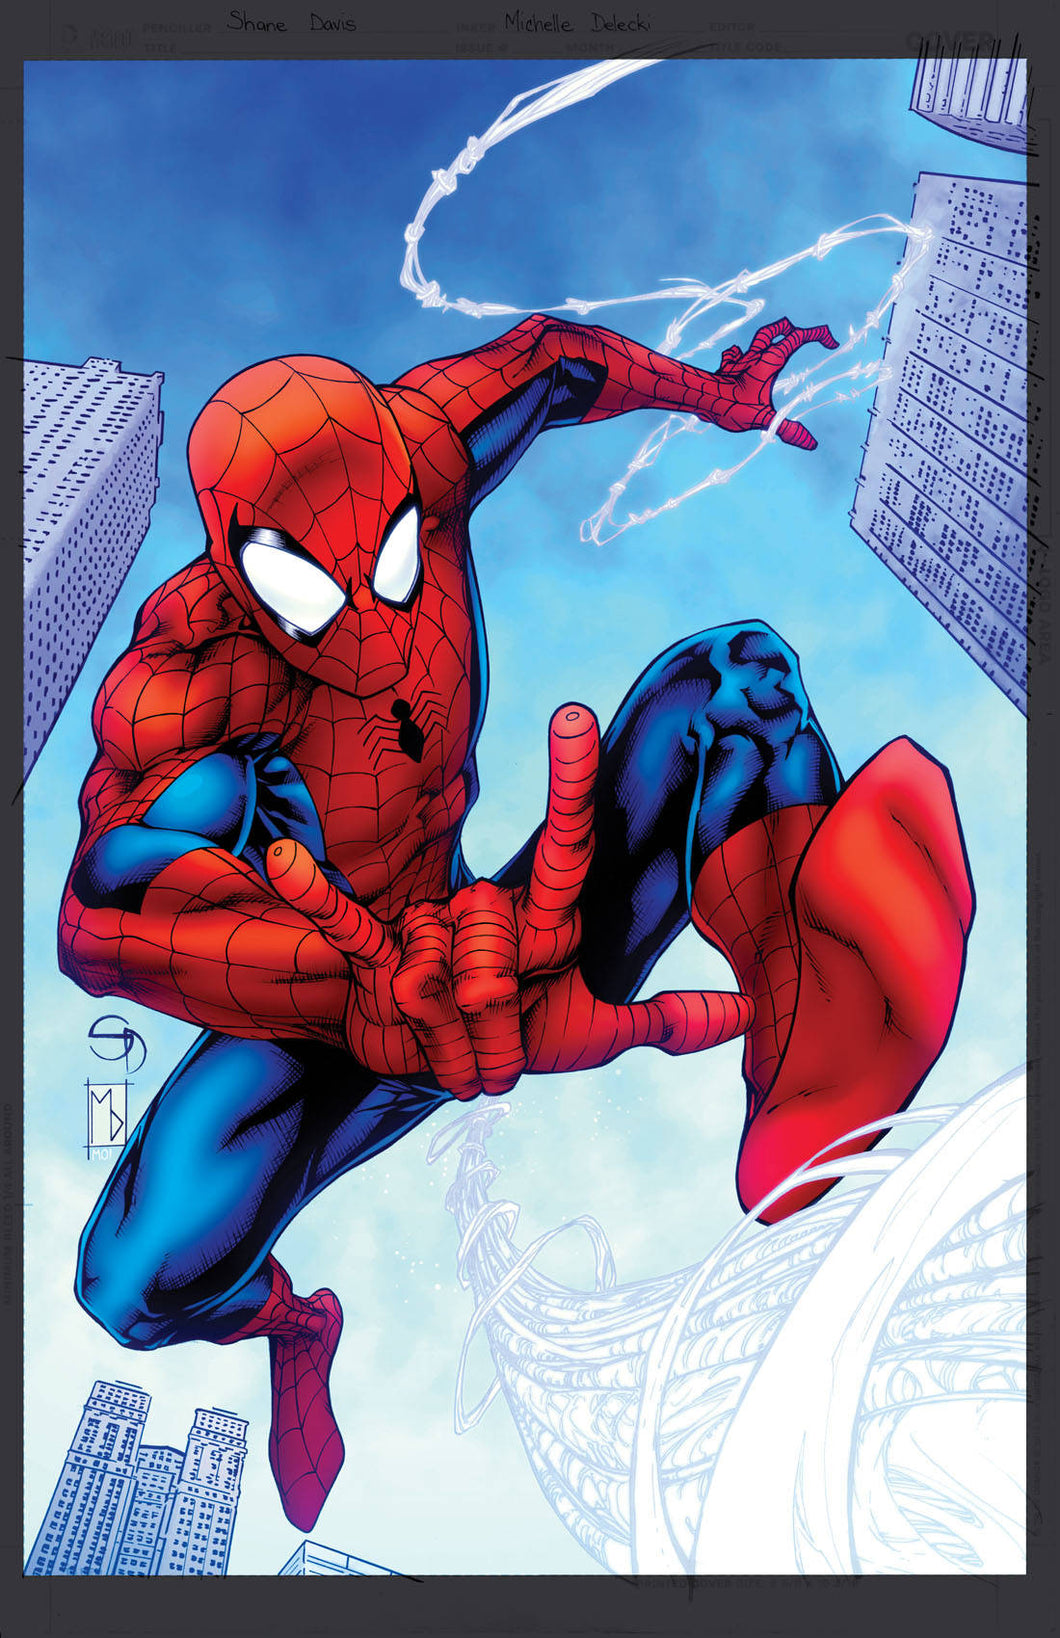 Amazing Spider-Man 1 Ratios